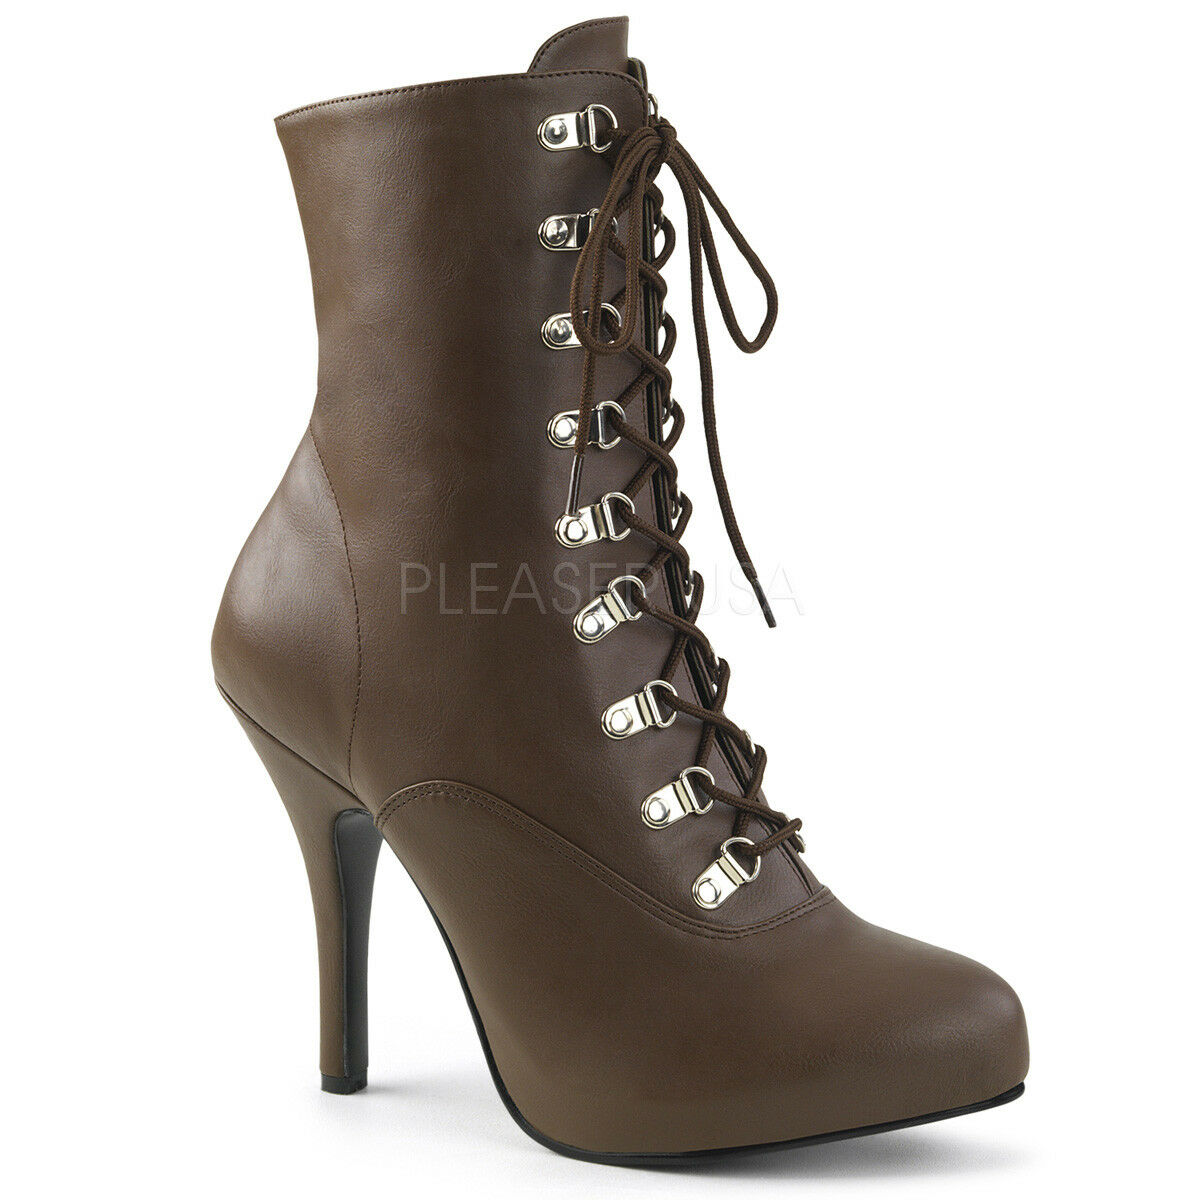 Pleaser EVE-106 Ankle/Mid-Calf Boots Brown Faux Leather Platform Victorian Heels